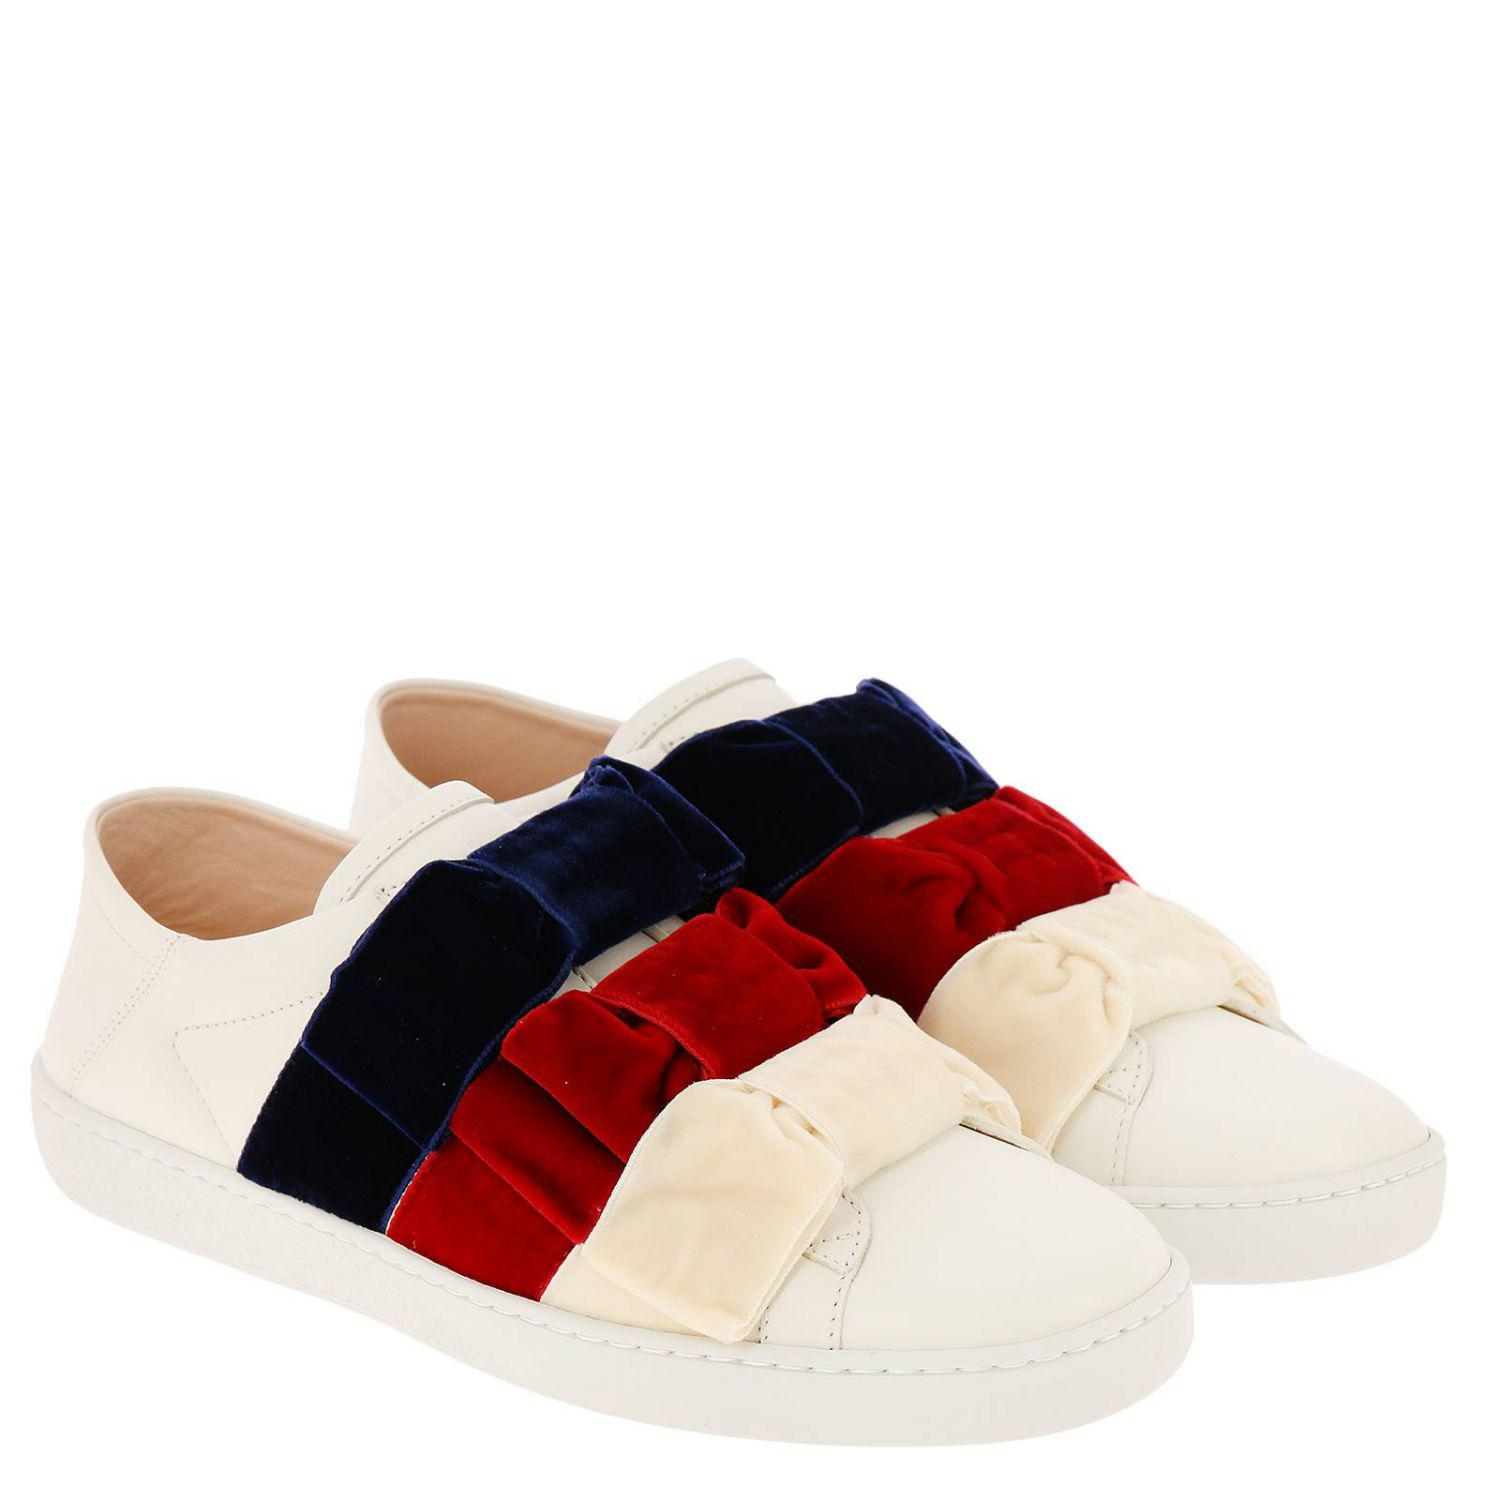 8a1c846db Gucci New Ace Slip-on Sneakers In Genuine Soft Leather With Maxi ...